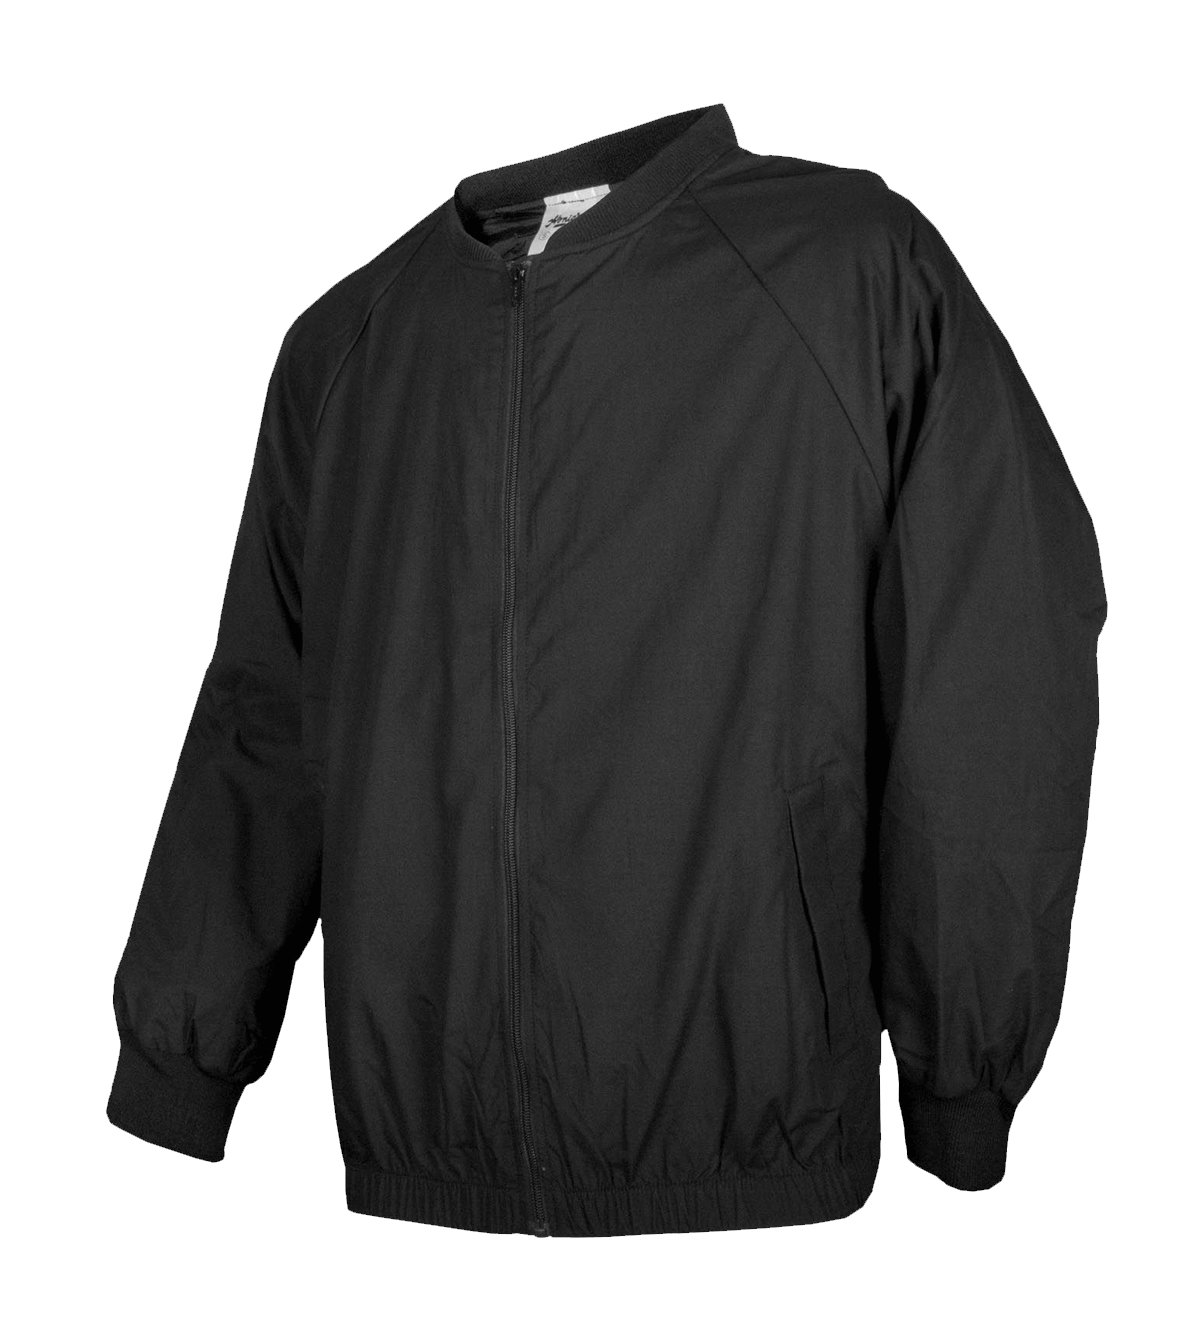 HONIG'S Zip Front Basketball Jacket